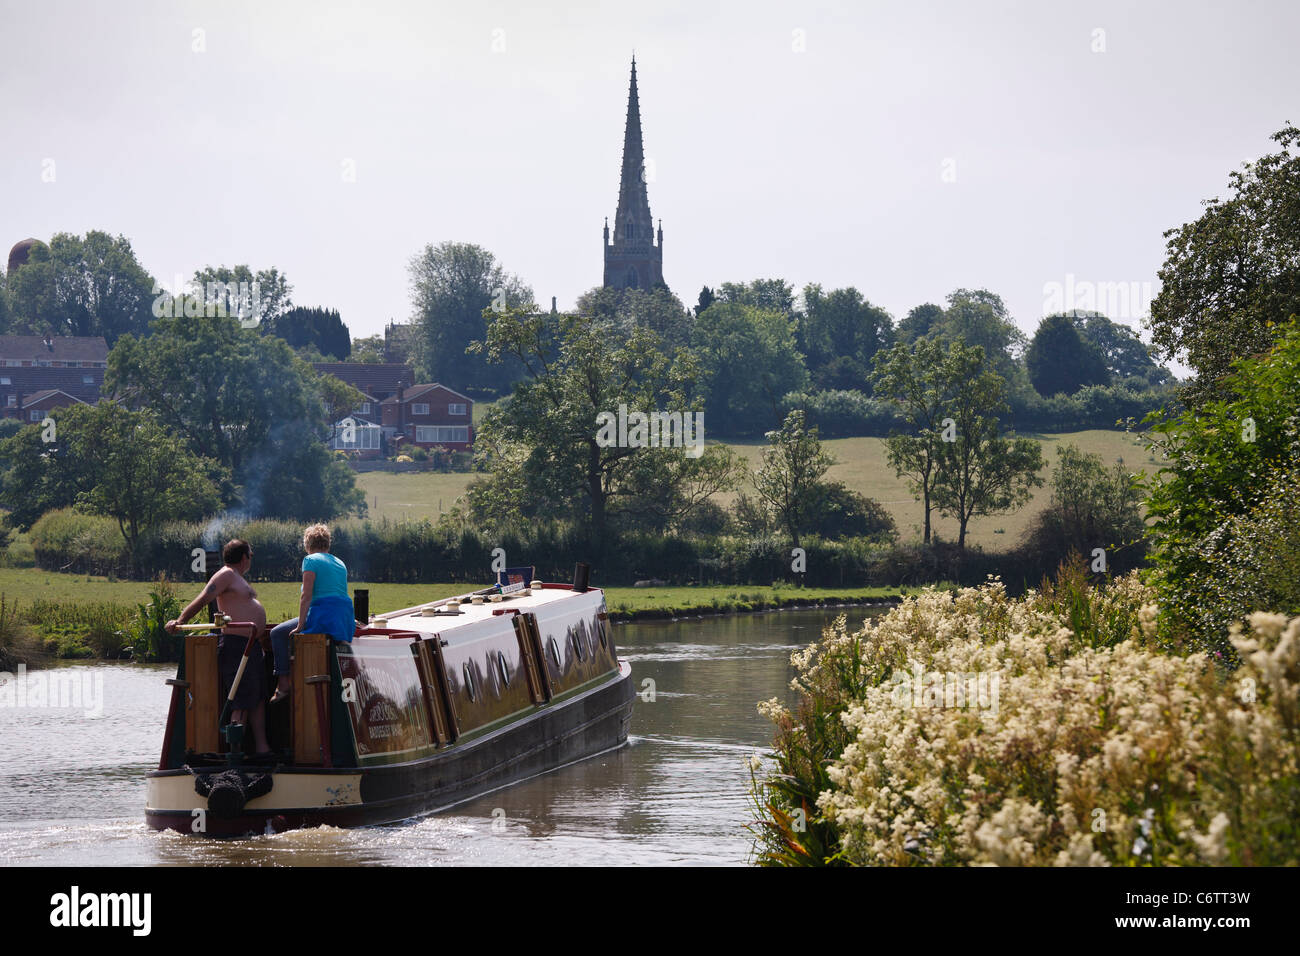 Narrowboat heading towards Braunston on the Oxford Canal, Northamptonshire - Stock Image